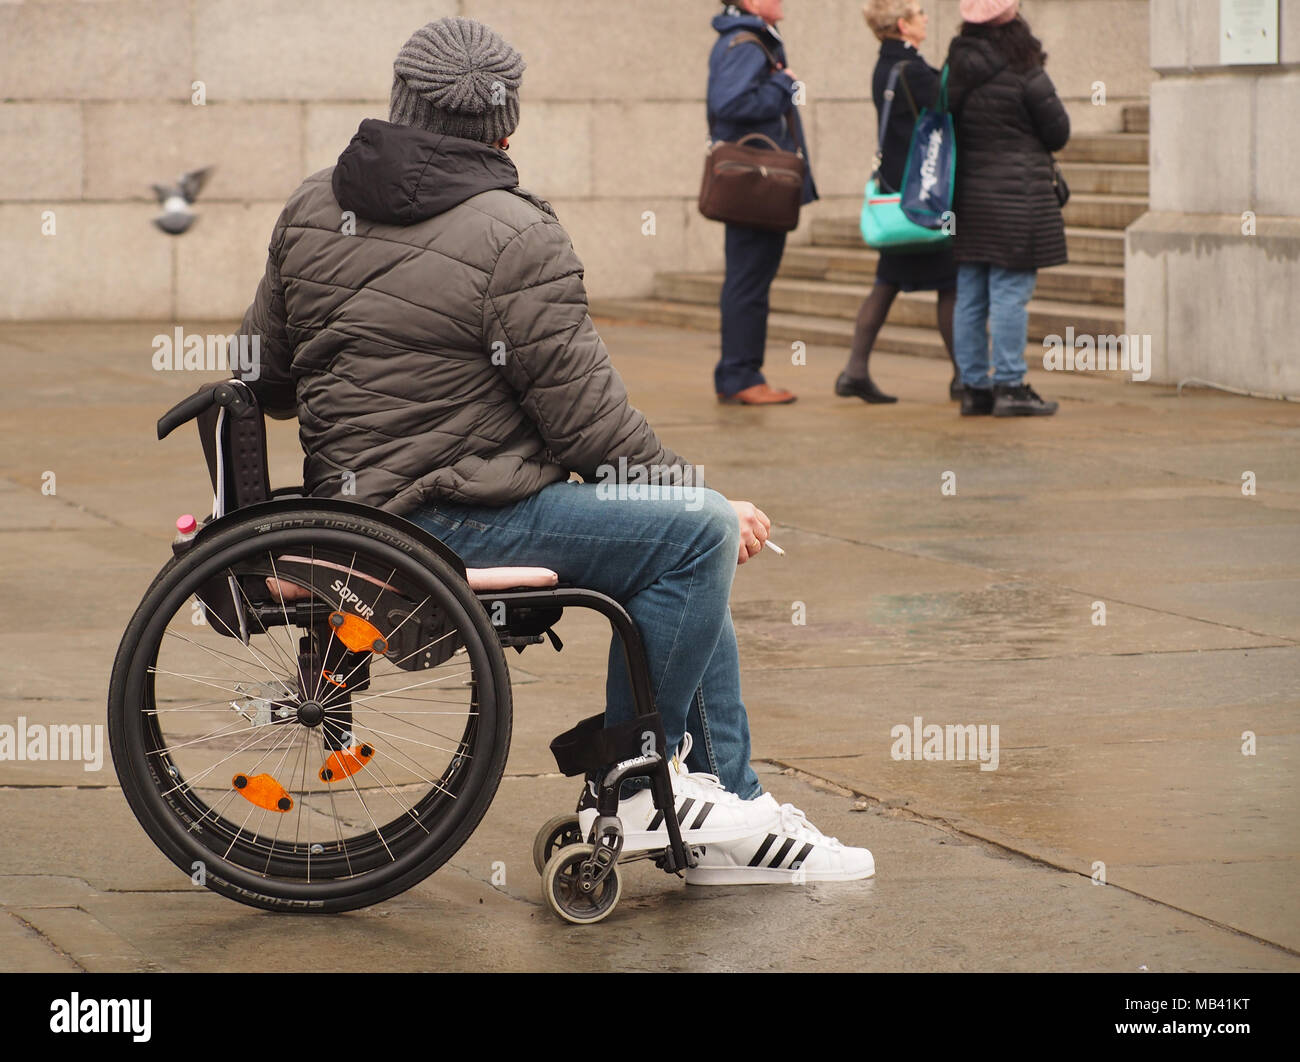 A young man in a wheelchair in Trafalgar Square, London seemingly on his own watching the sights around him - Stock Image